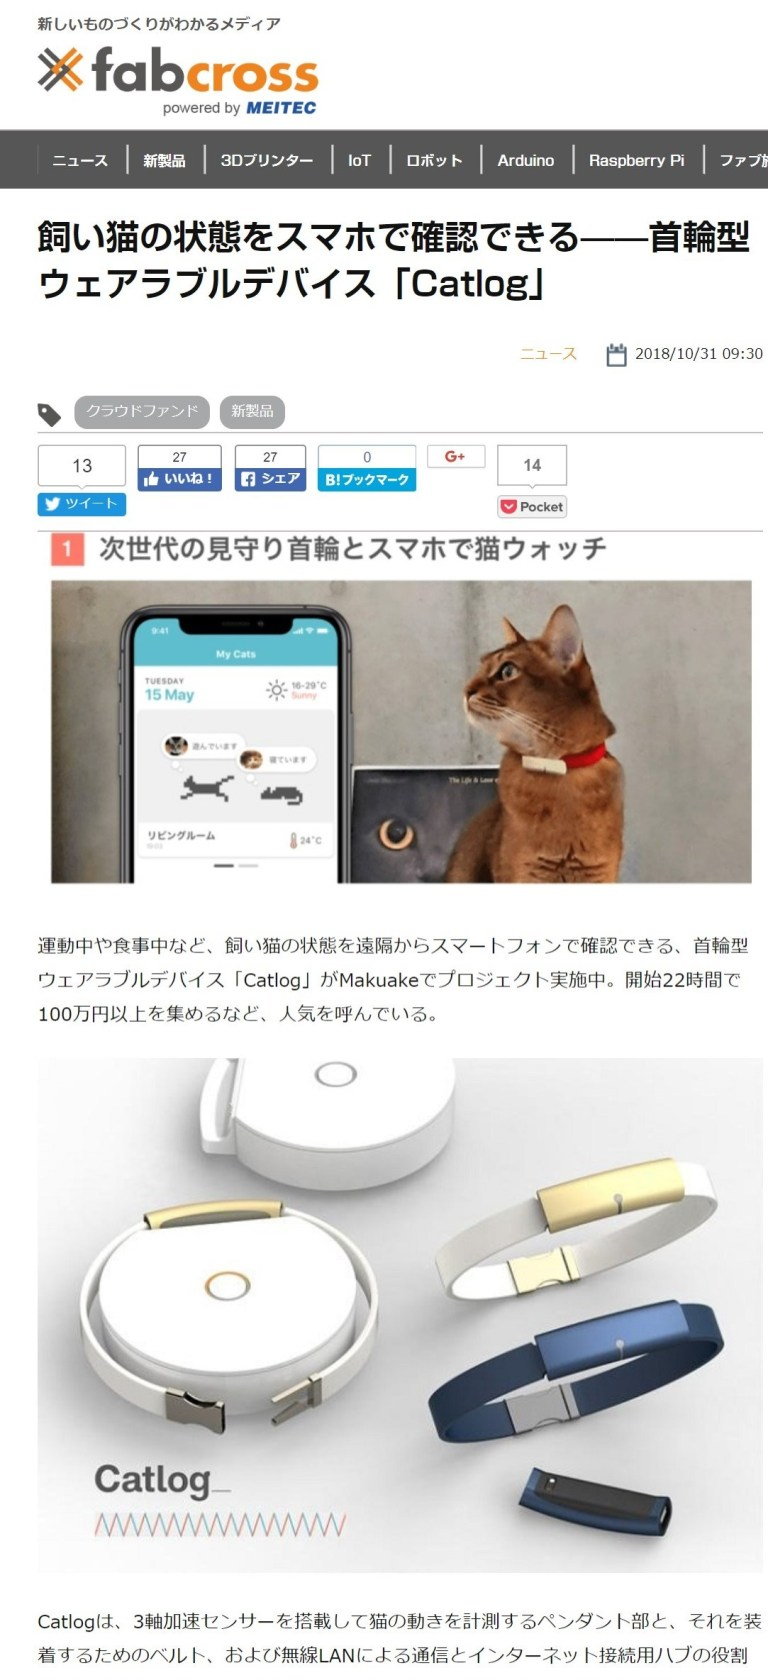 screencapture-fabcross-jp-news-2018-20181031 catwearabledevice catlog-html-2018-12-17-14 35 17